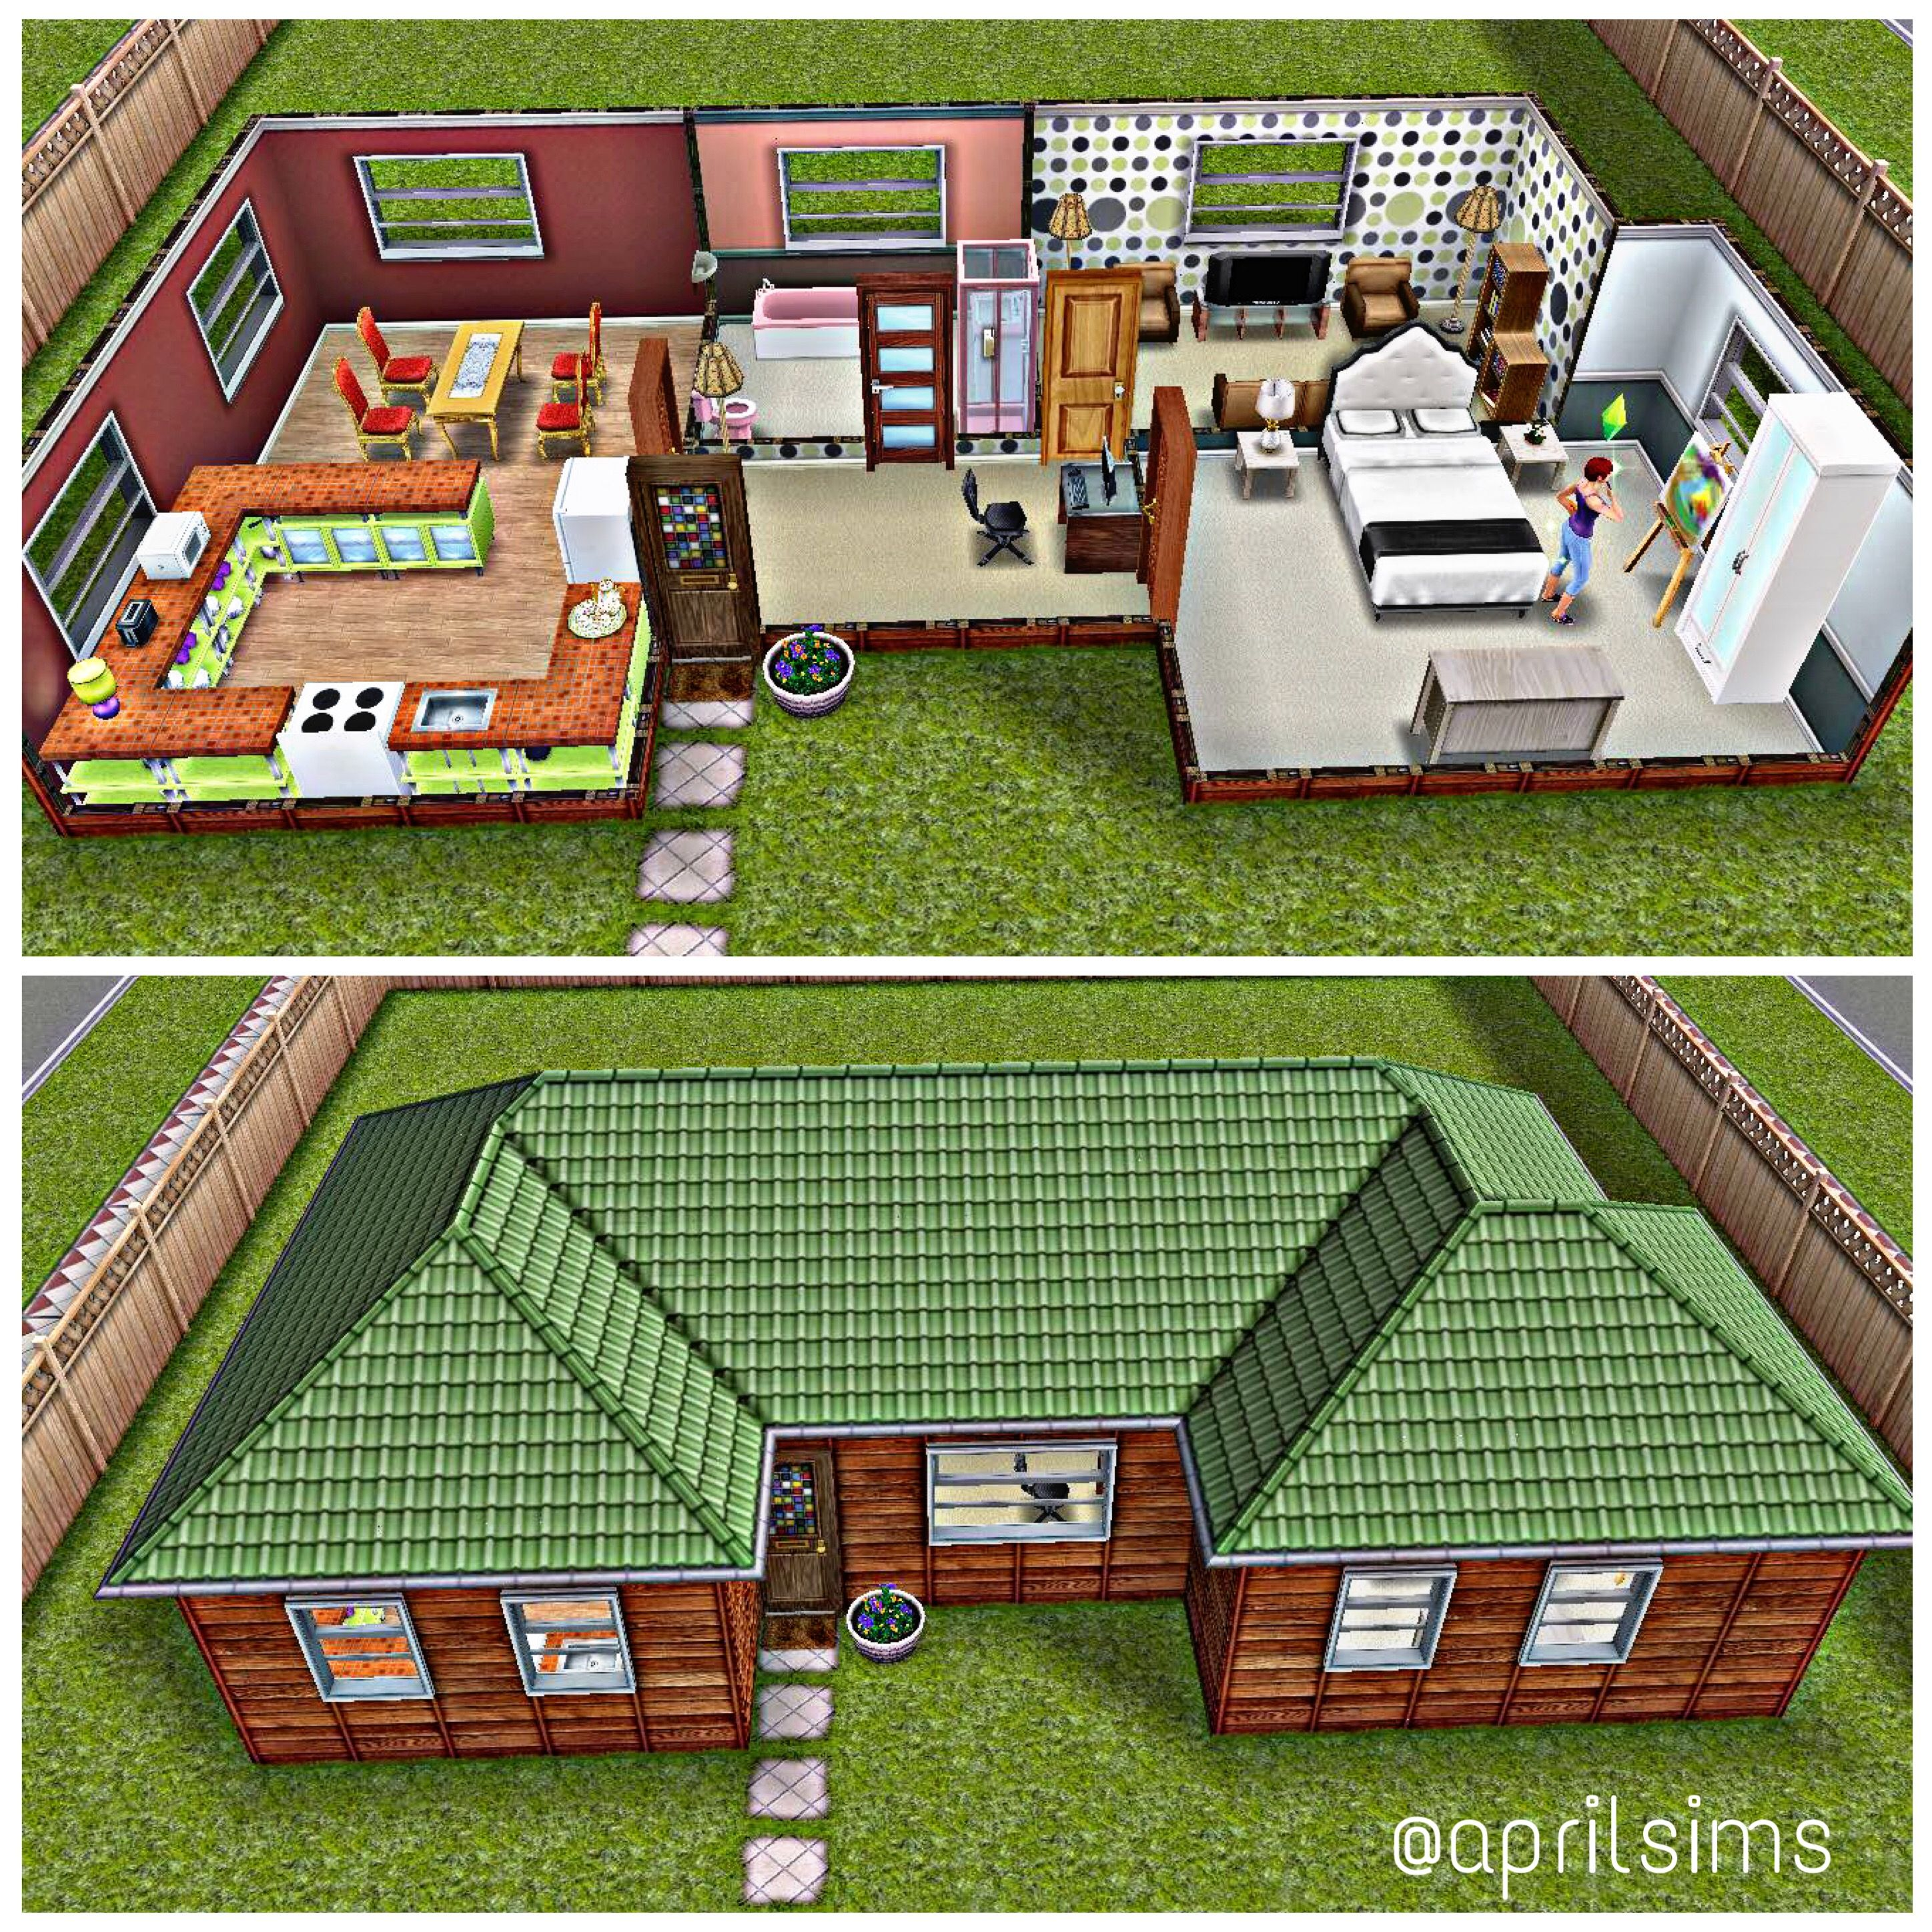 One Of My Houses I Created On Sims Freeplay It Is A Very Simple Small House Good Enough For 1 2 Sims F Sims Freeplay Houses Sims House Sims 4 House Design